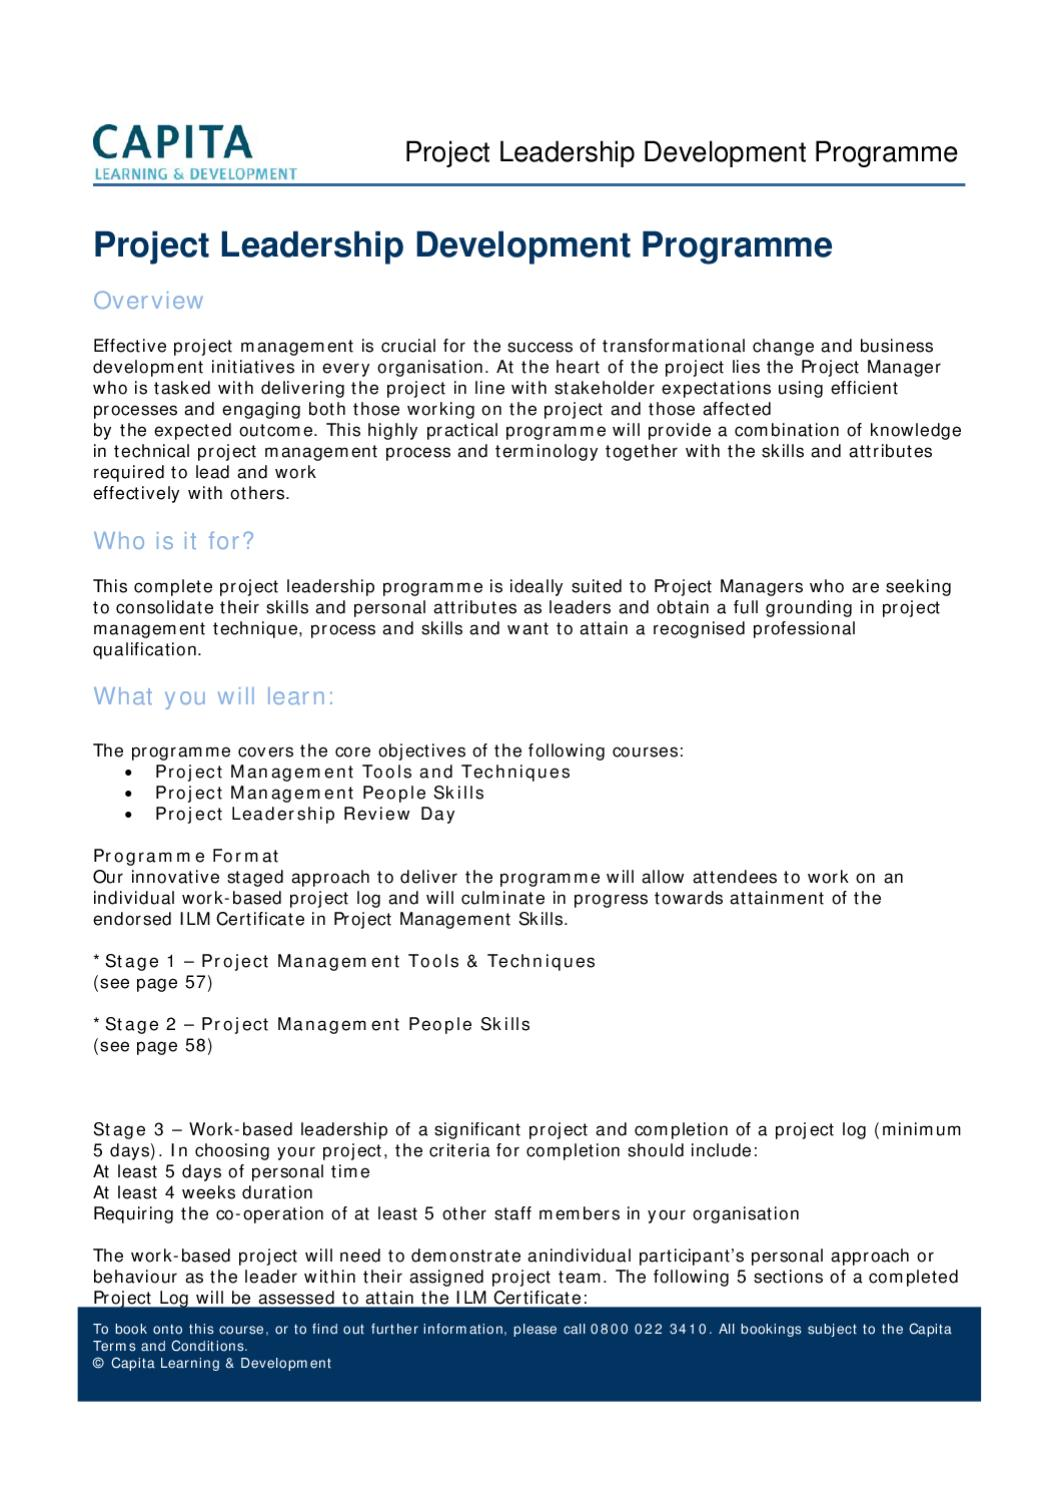 Project Leadership Development Programme By Capita Learning